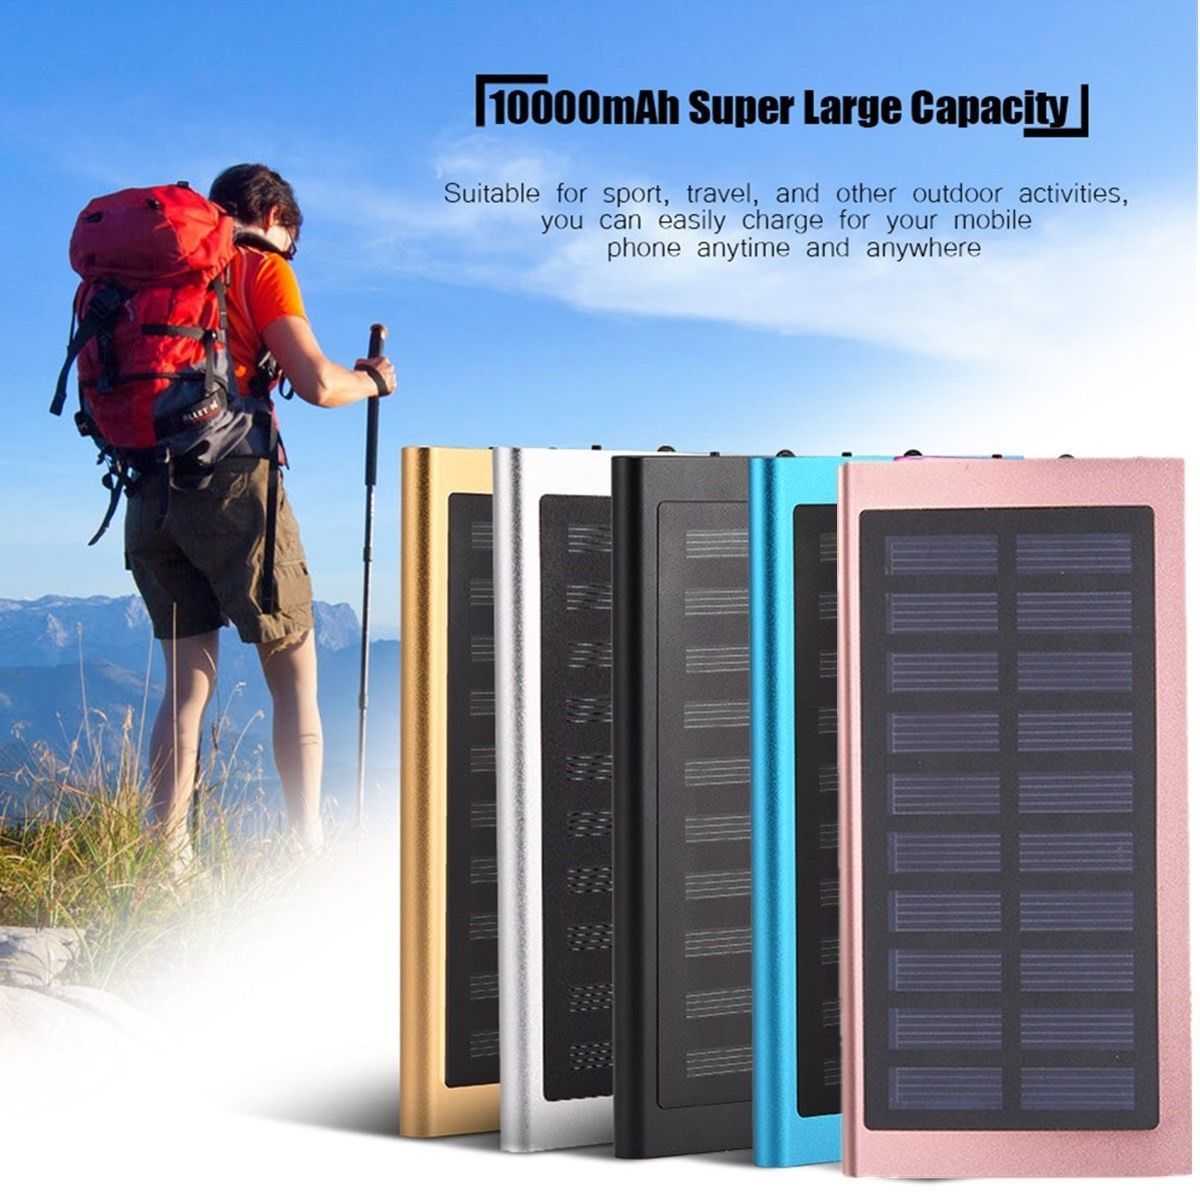 8000mAh Portable Dual USB Battery portable lightweight power bank mobile phone solar charger